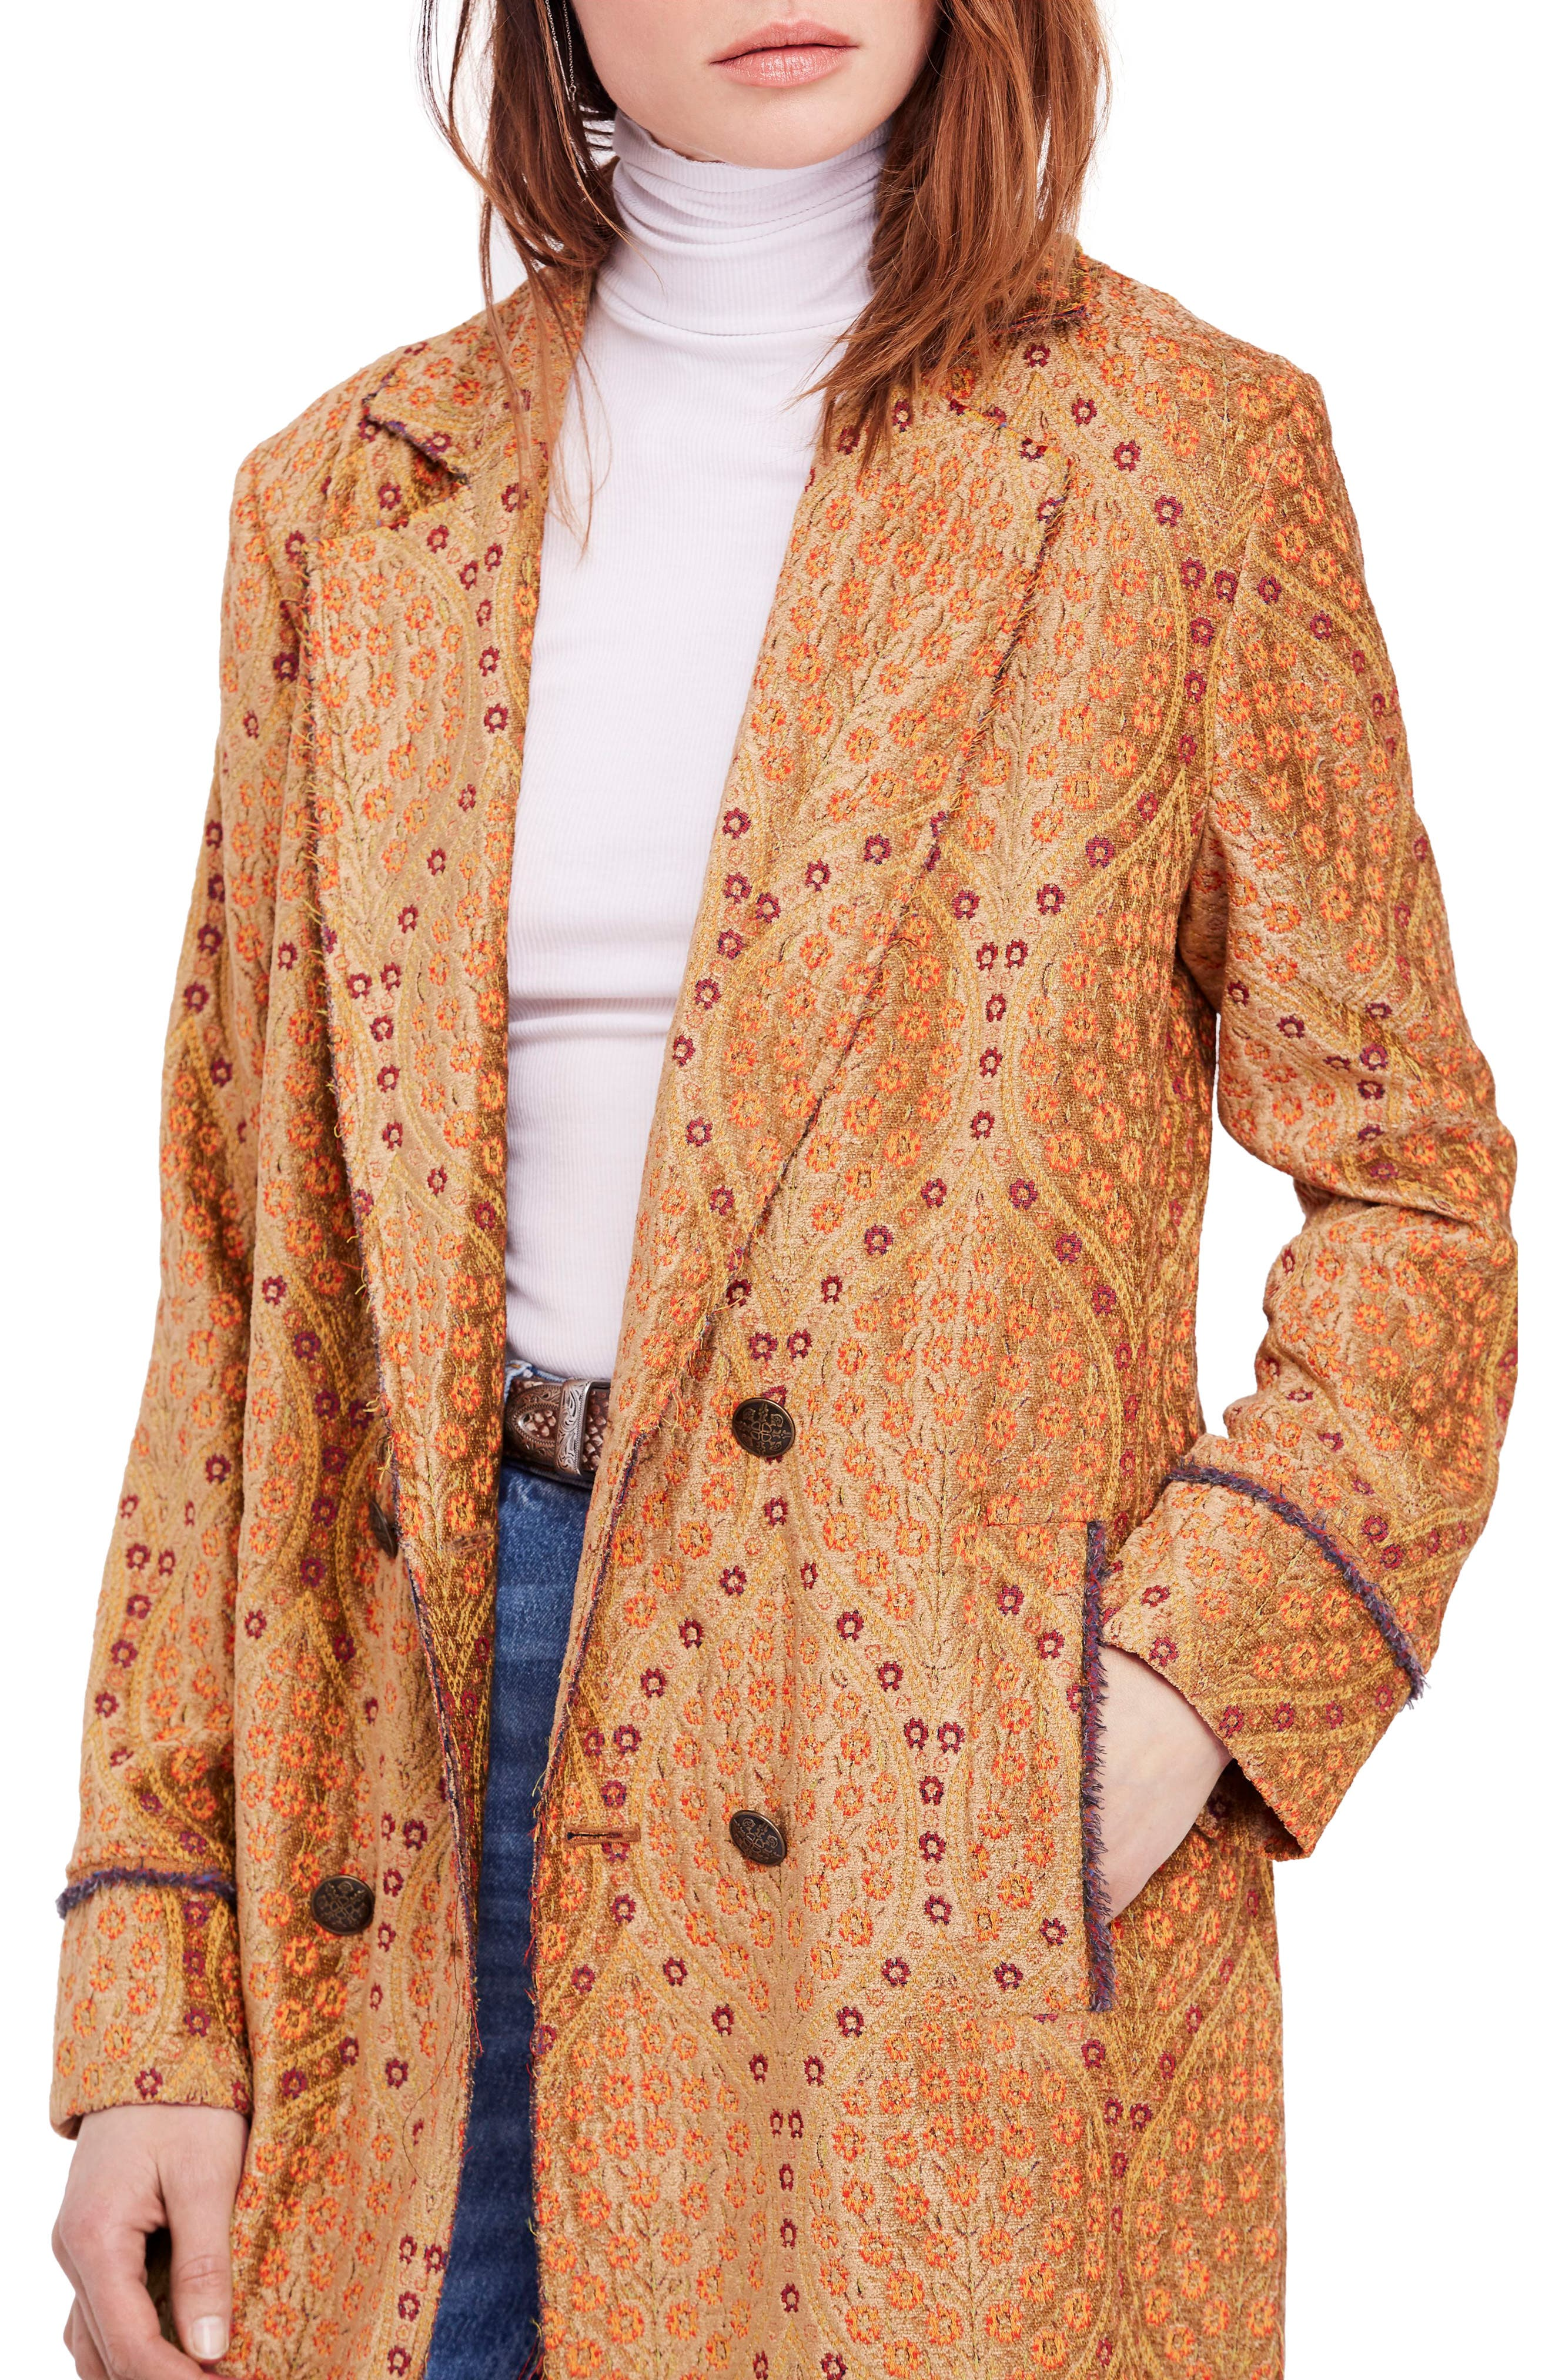 Out All Night Long Jacquard Jacket,                             Alternate thumbnail 4, color,                             710